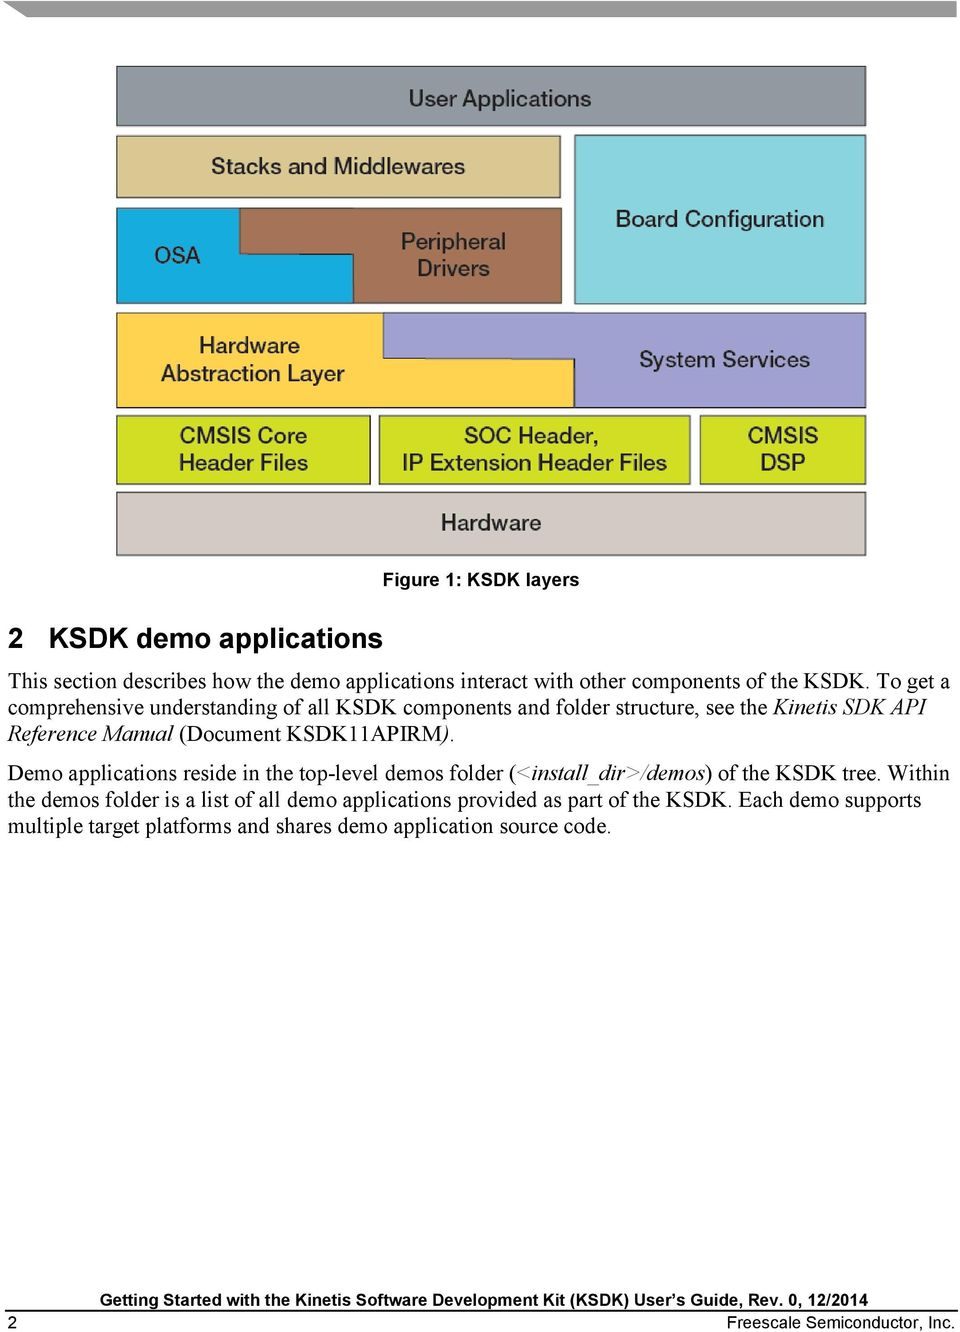 Demo applications reside in the top-level demos folder (<install_dir>/demos) of the KSDK tree.